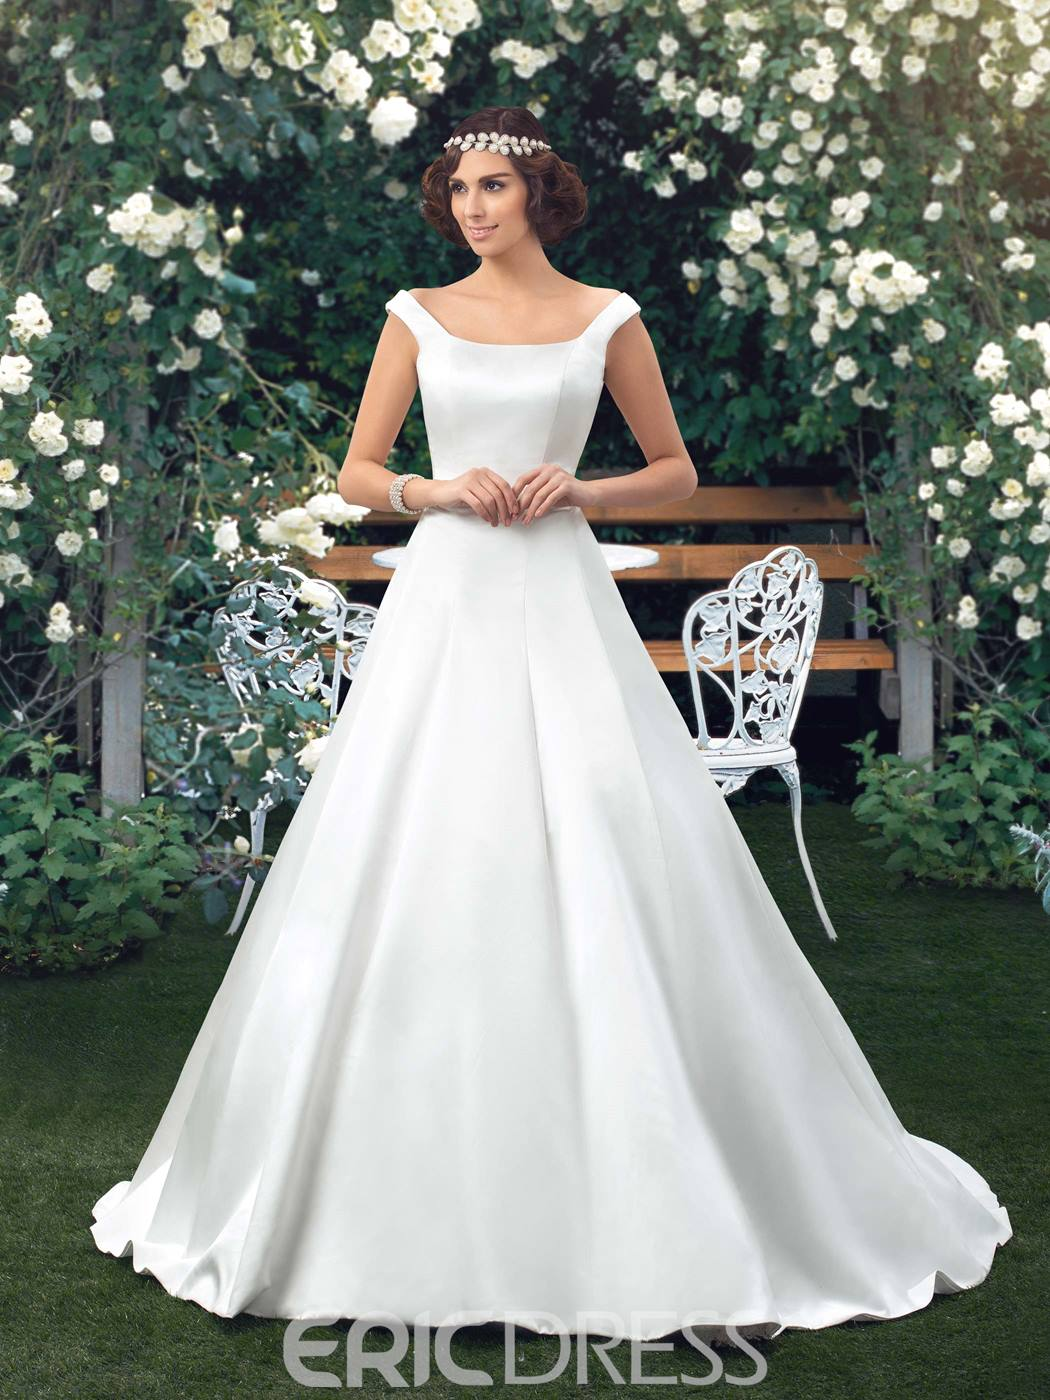 Ericdress Button Simple Off the Shoulder Wedding Dress